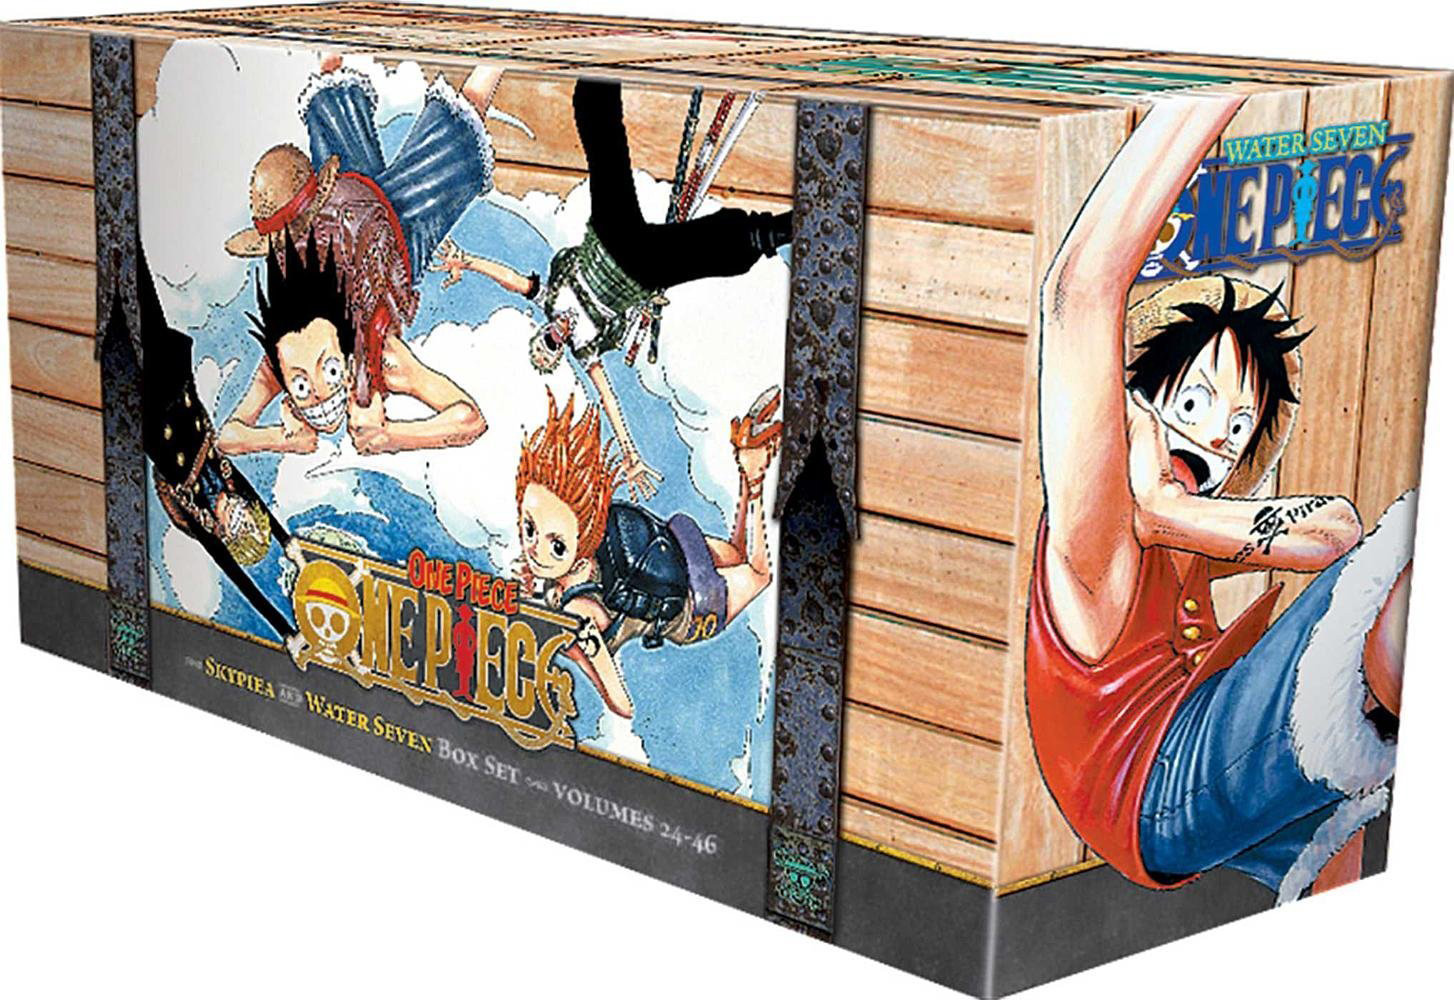 Skypiea and Water Seven, Volumes 24-46 (Box Set)